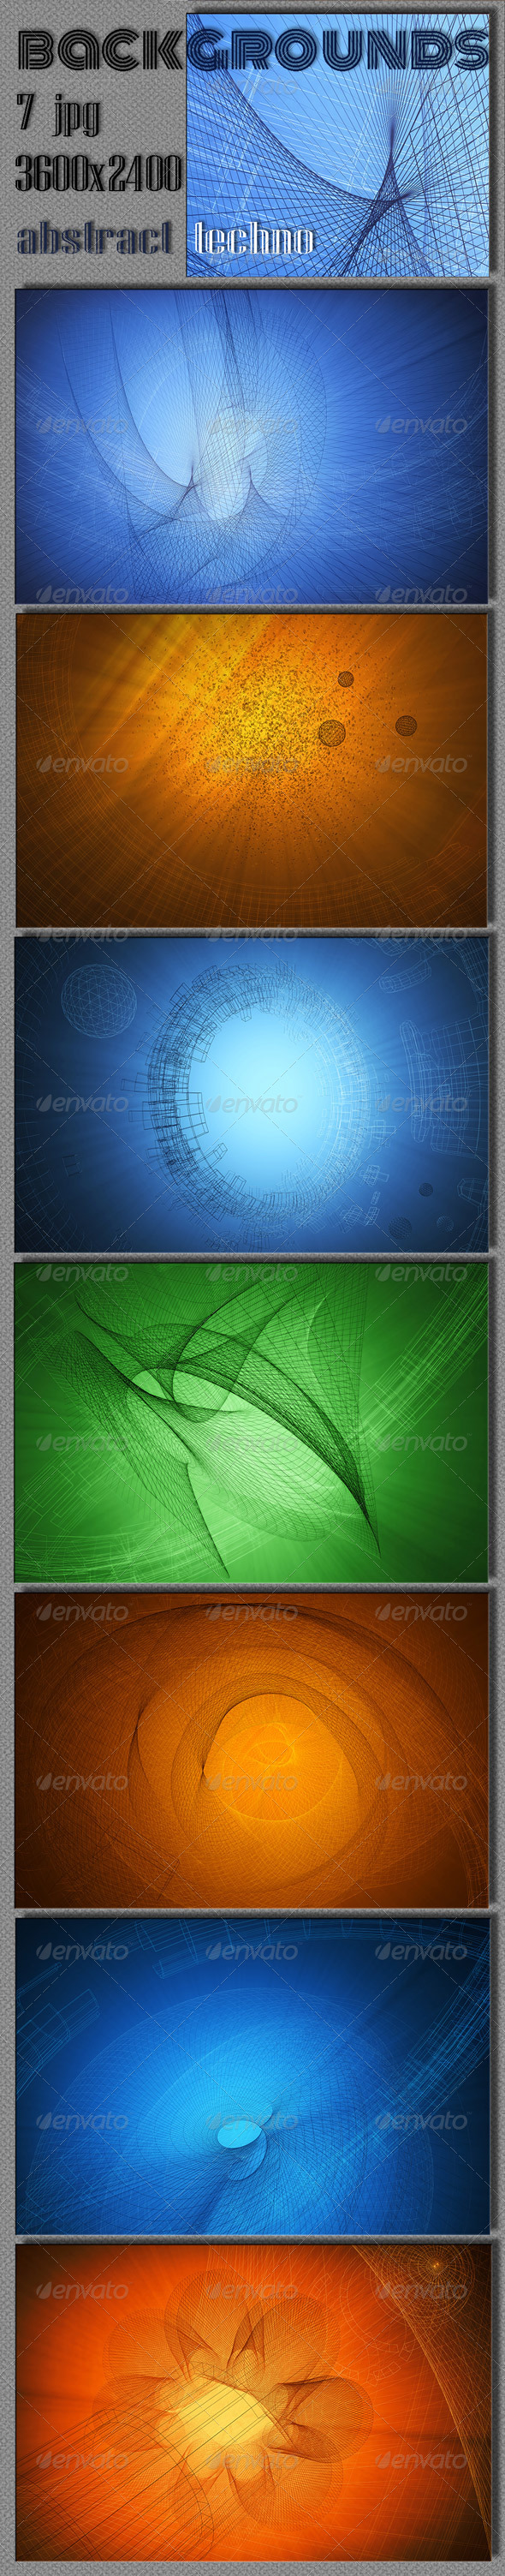 Abstract Techno Background - Tech / Futuristic Backgrounds